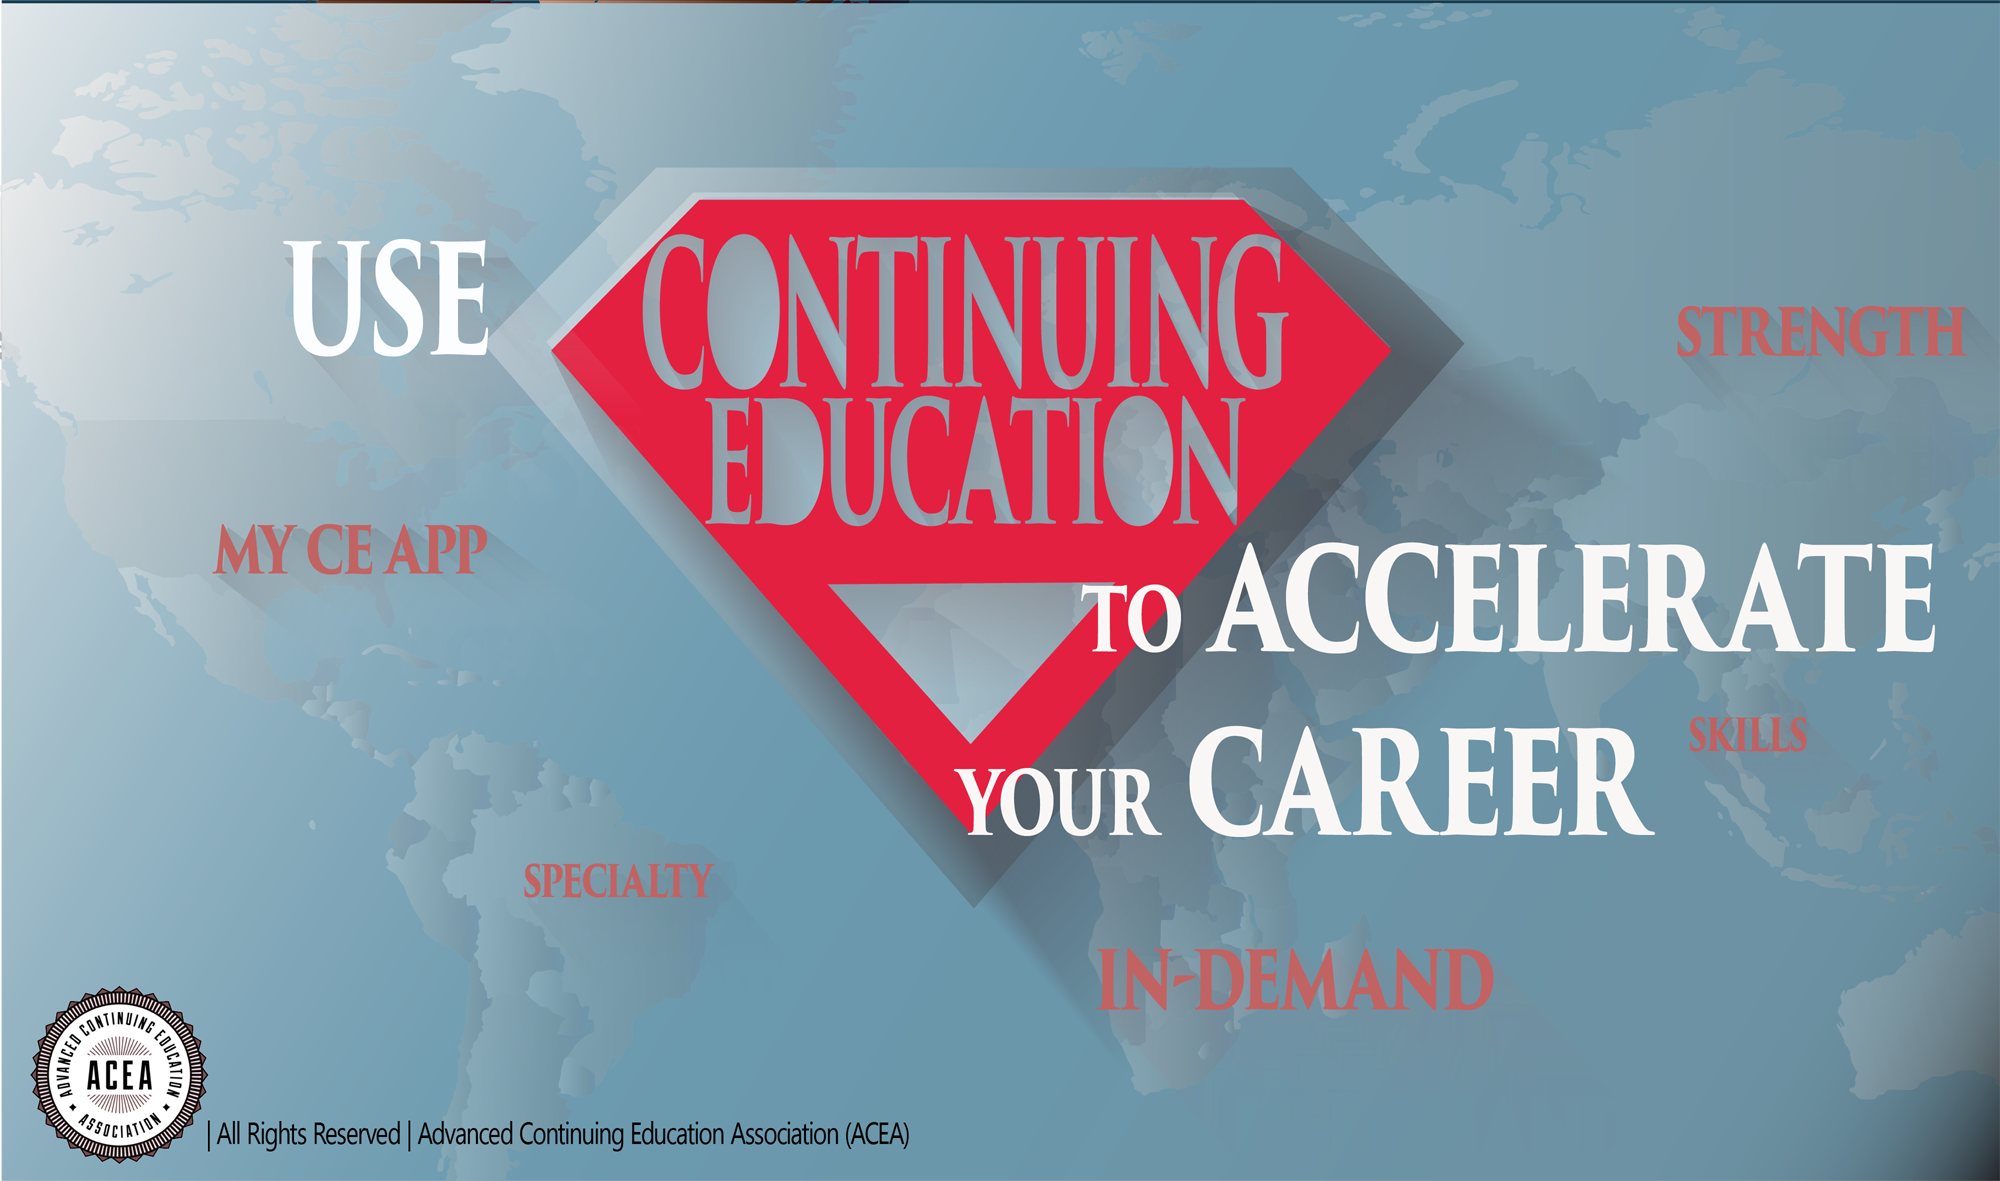 Accelerate career with Continuing education